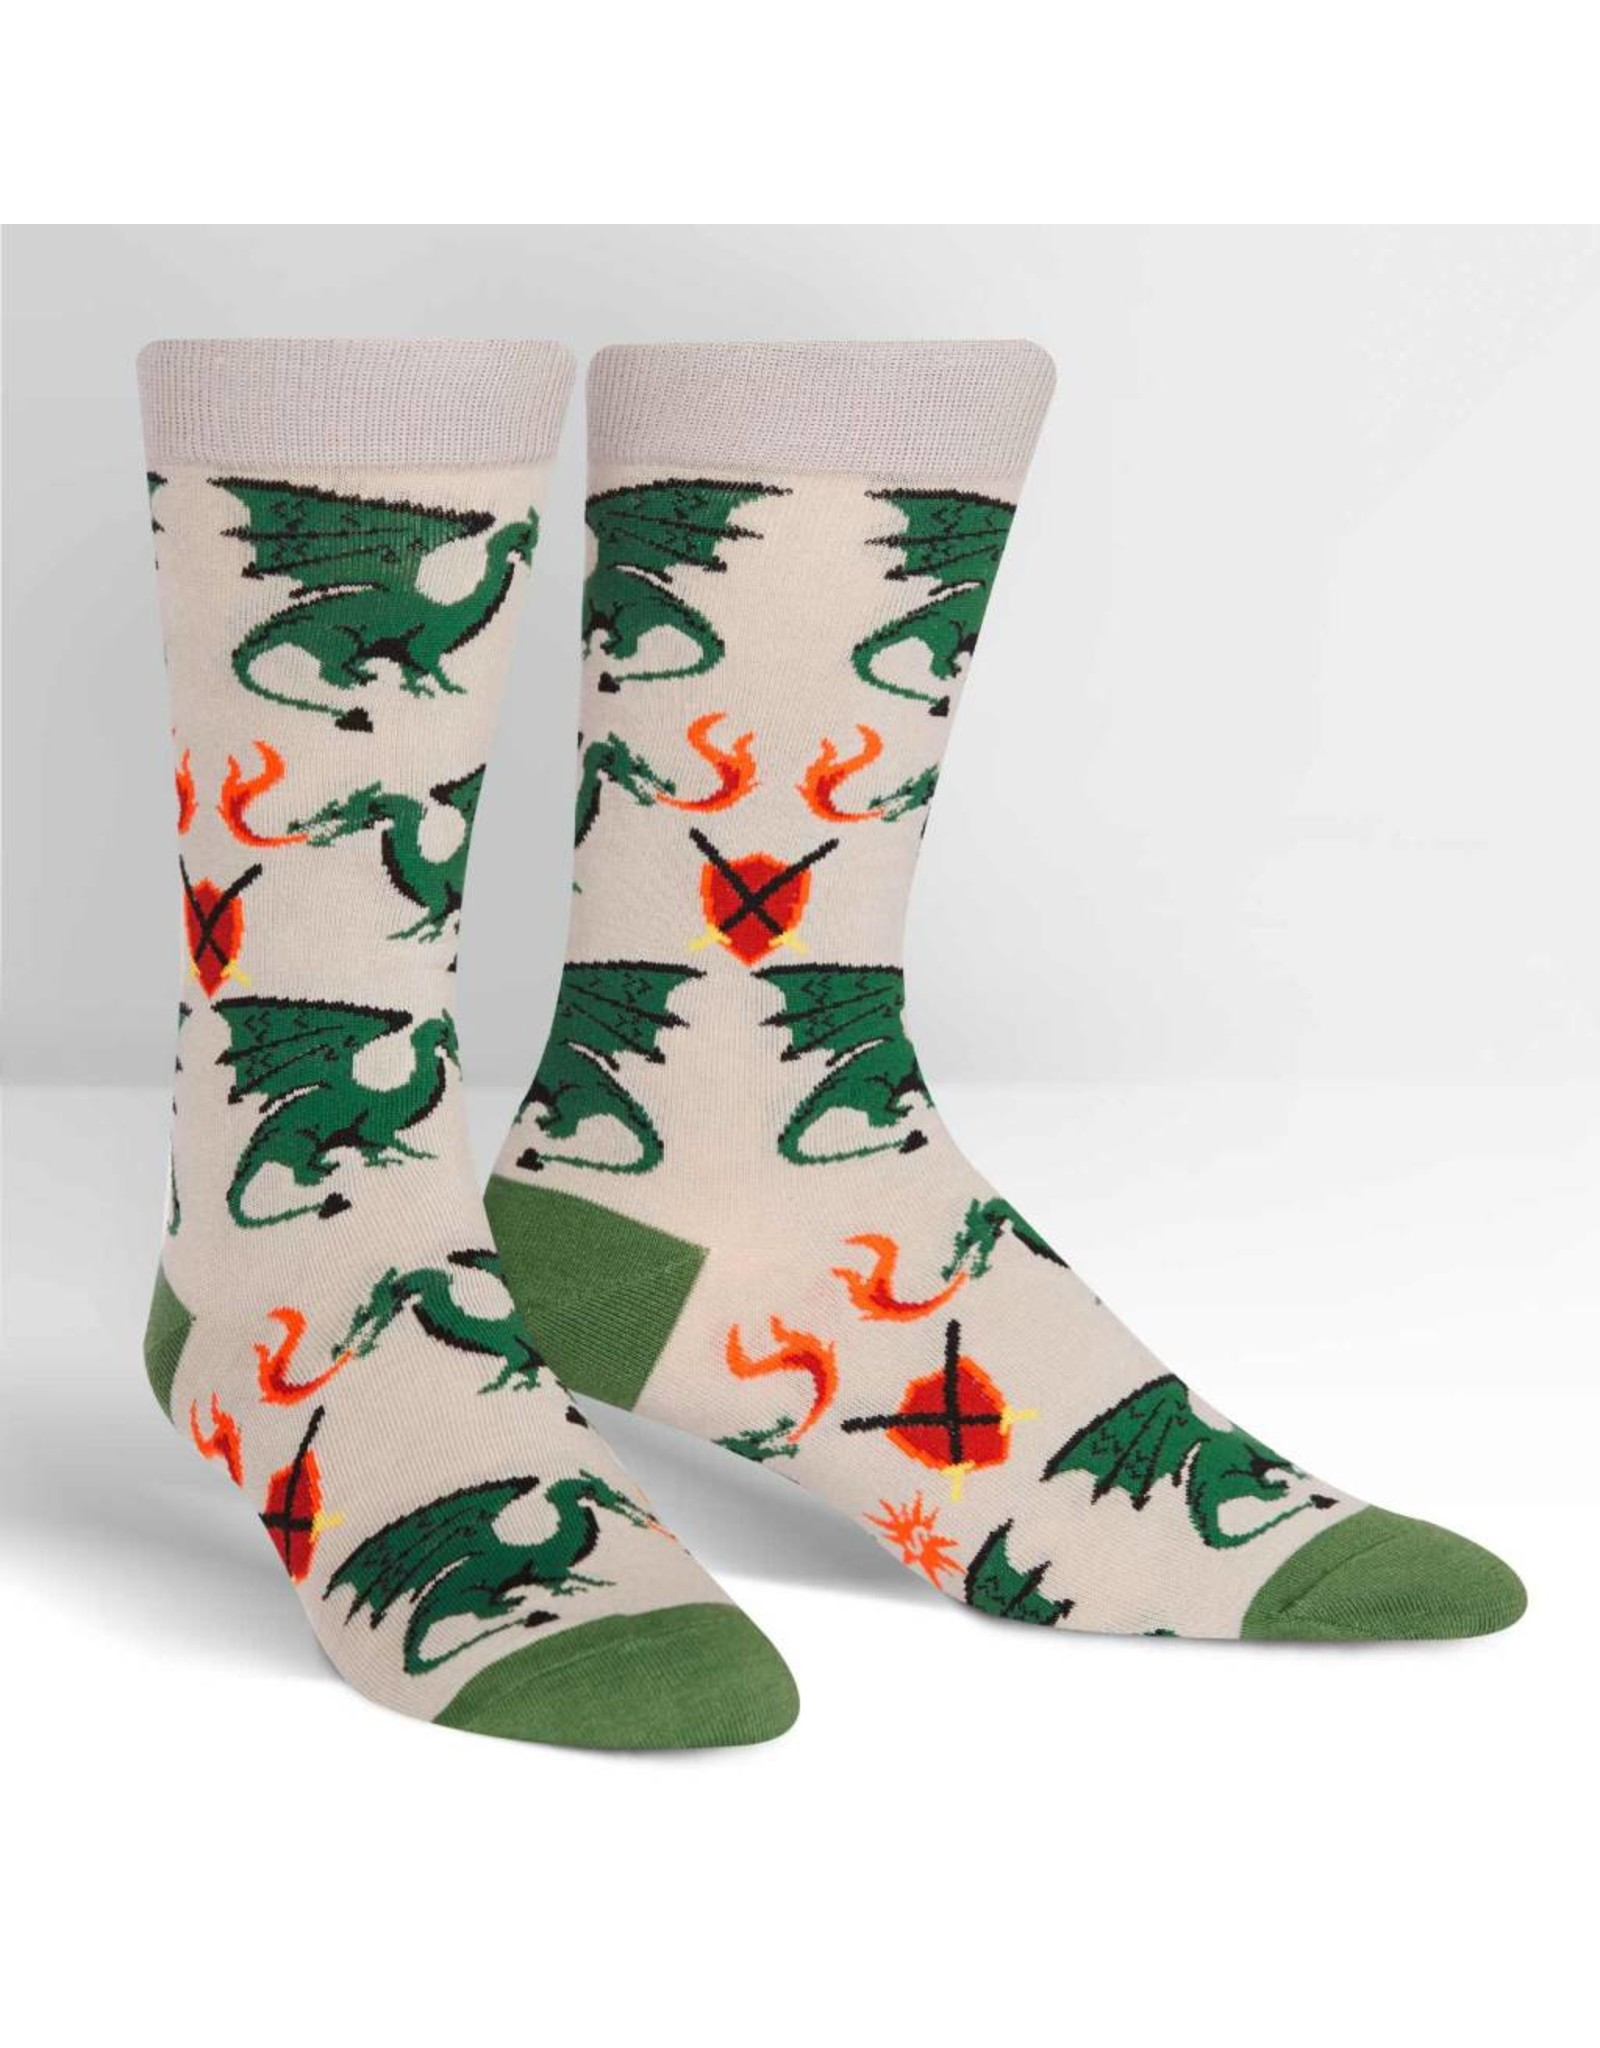 SOCK IT TO ME - Men's Beware of Dragons Crew Socks